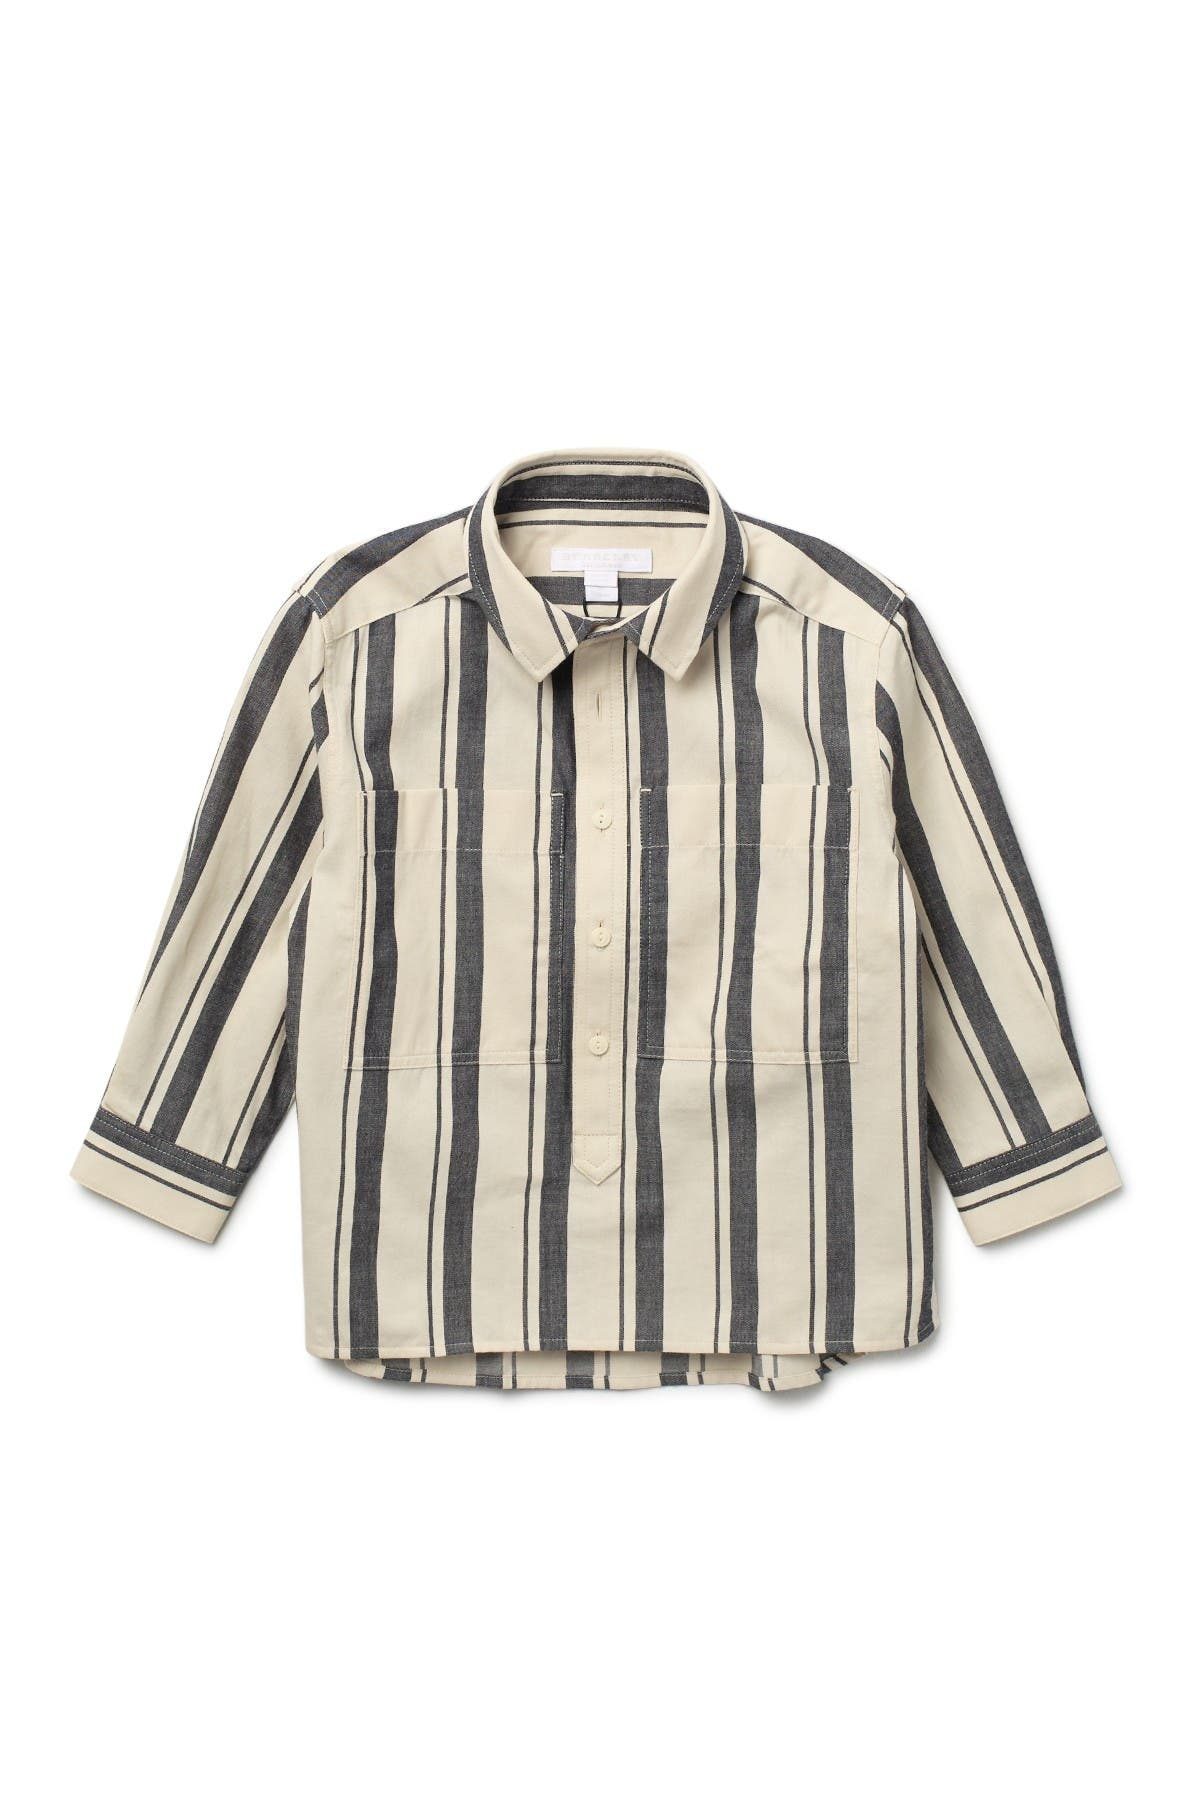 Image of Burberry Carson Stripe Long Sleeve Shirt